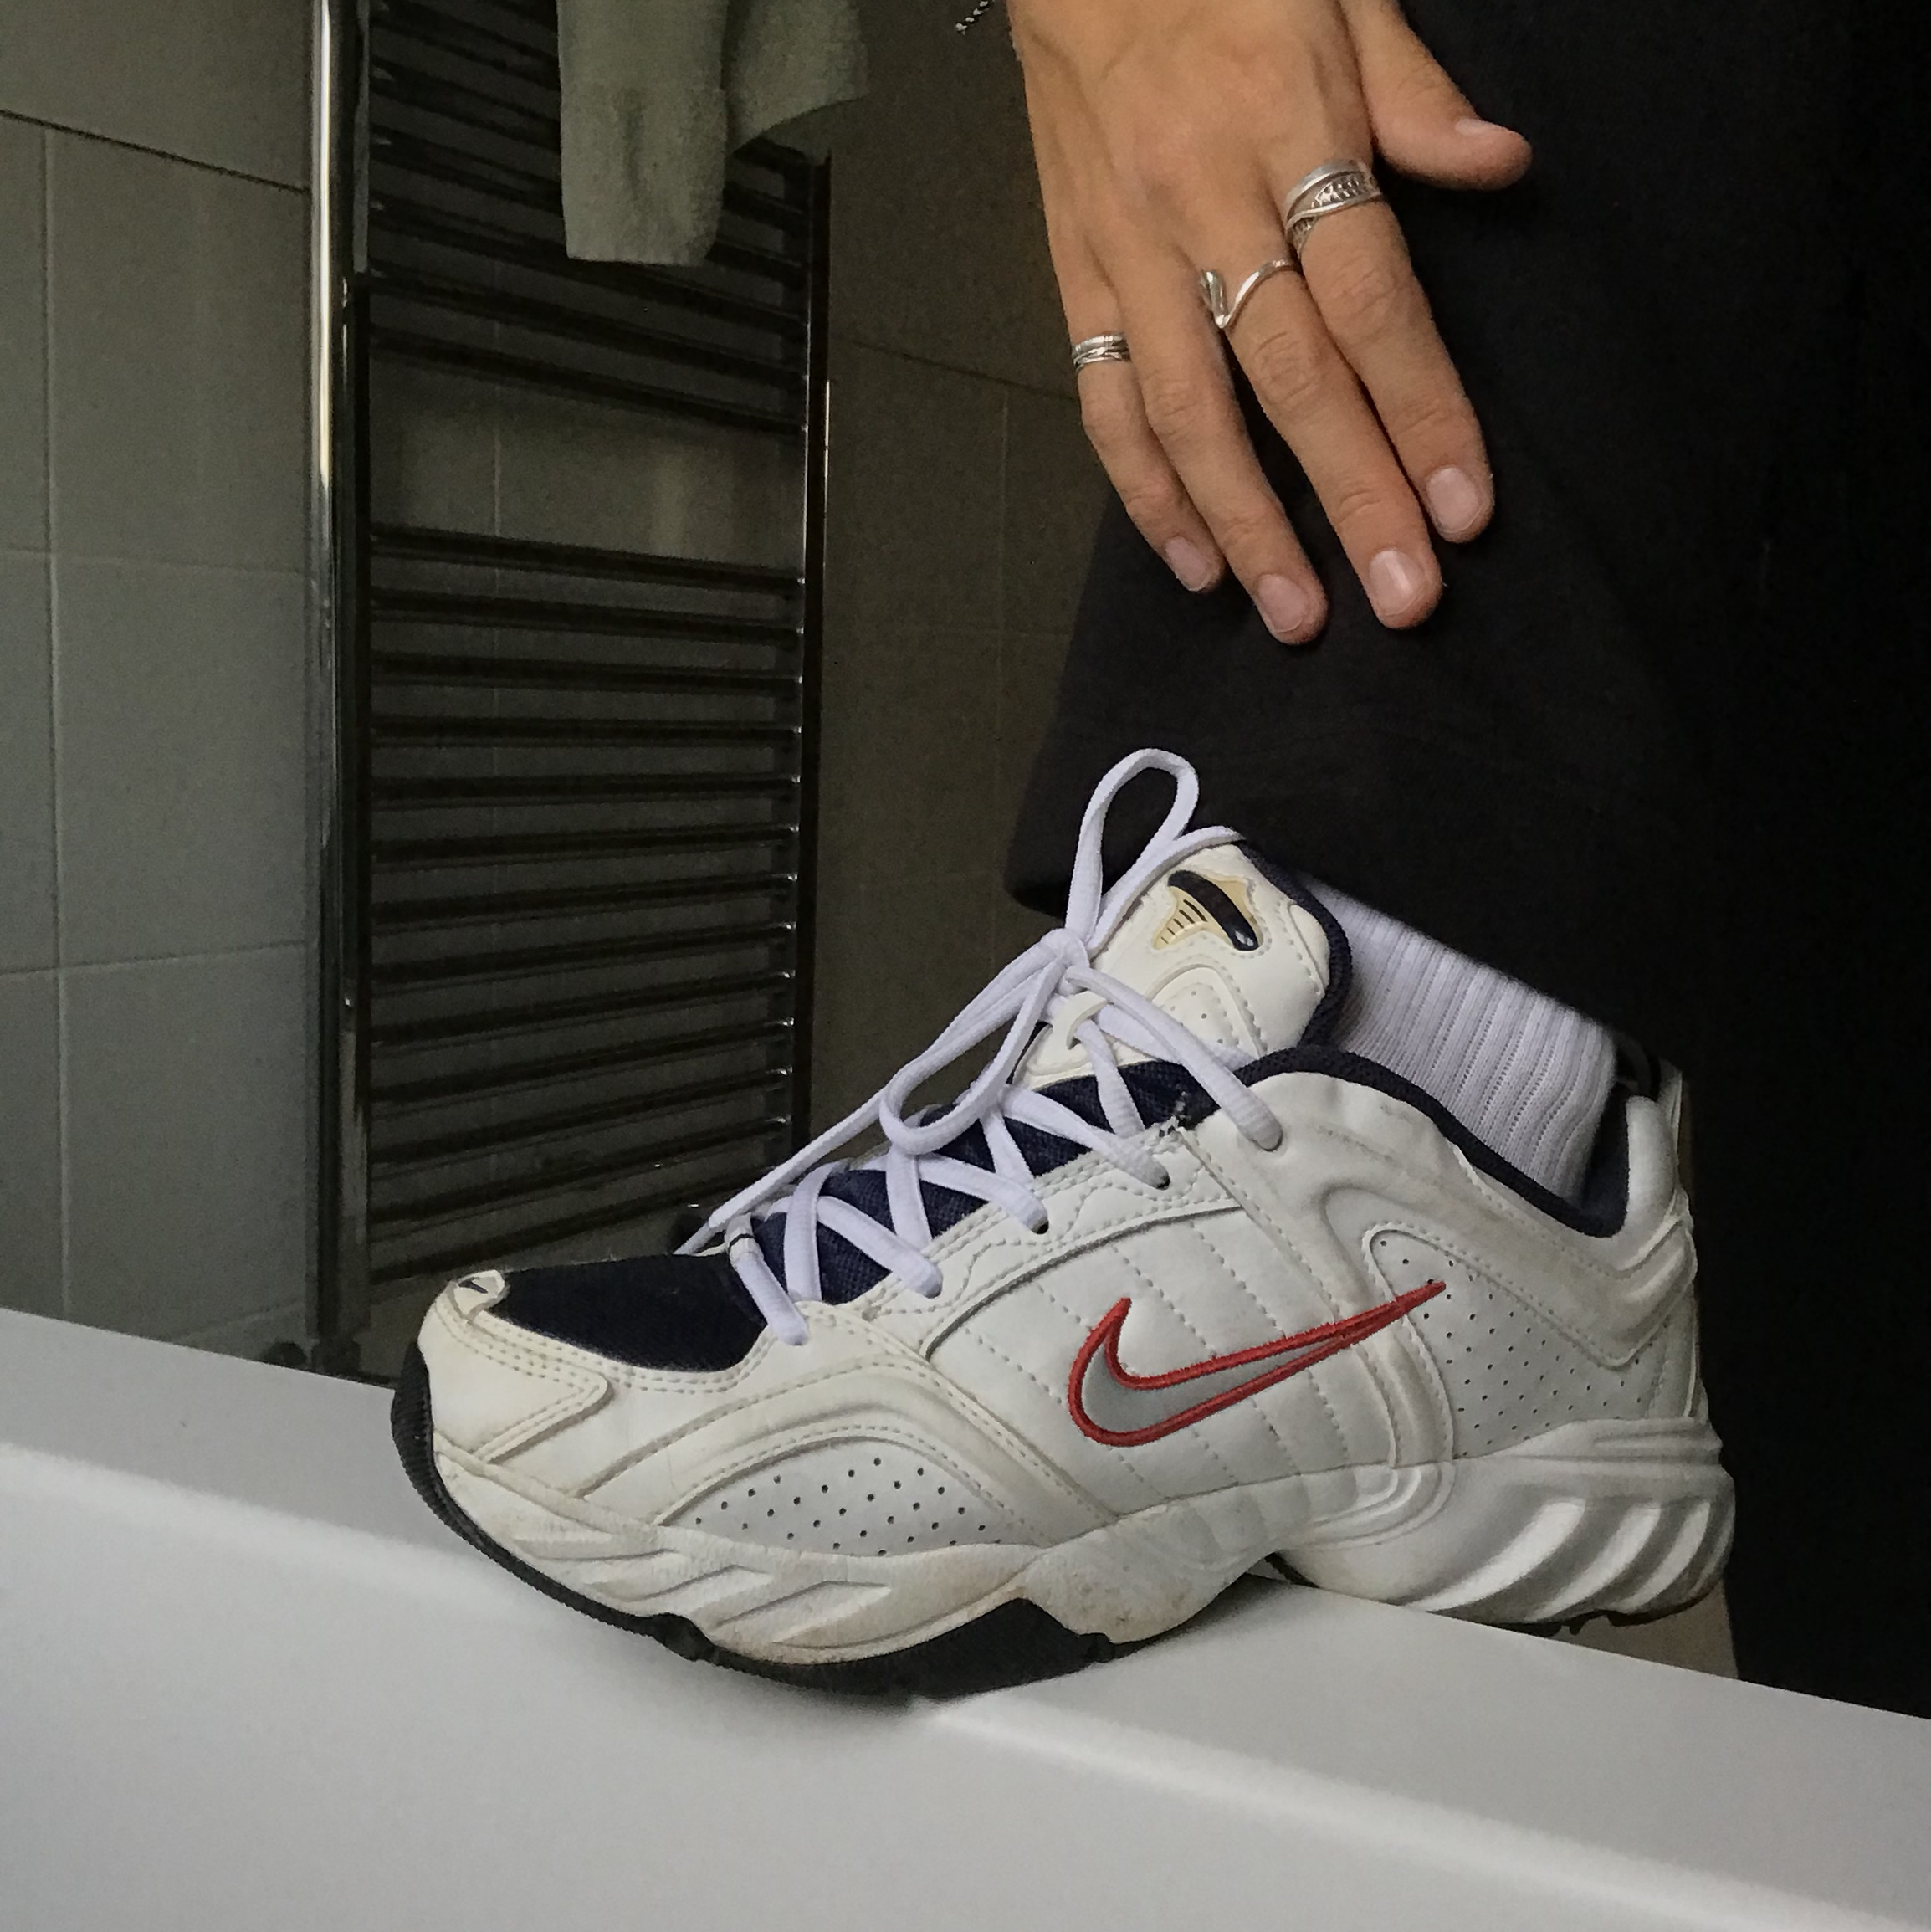 Nike air max shoes chunky white shoes